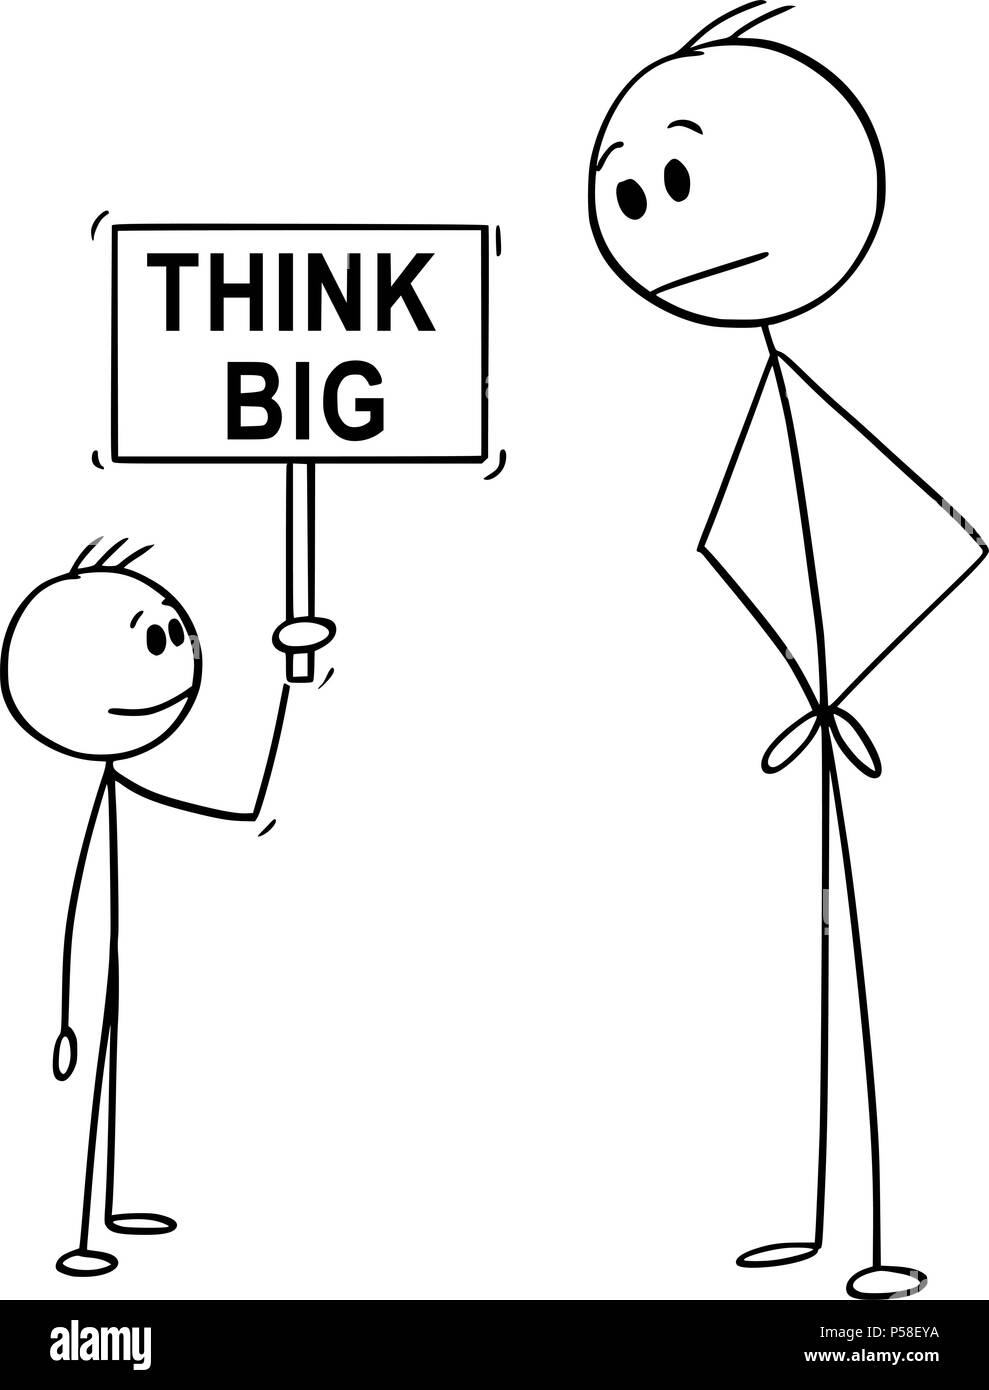 Cartoon of Man and Small Boy Holding Think Big Sign - Stock Image